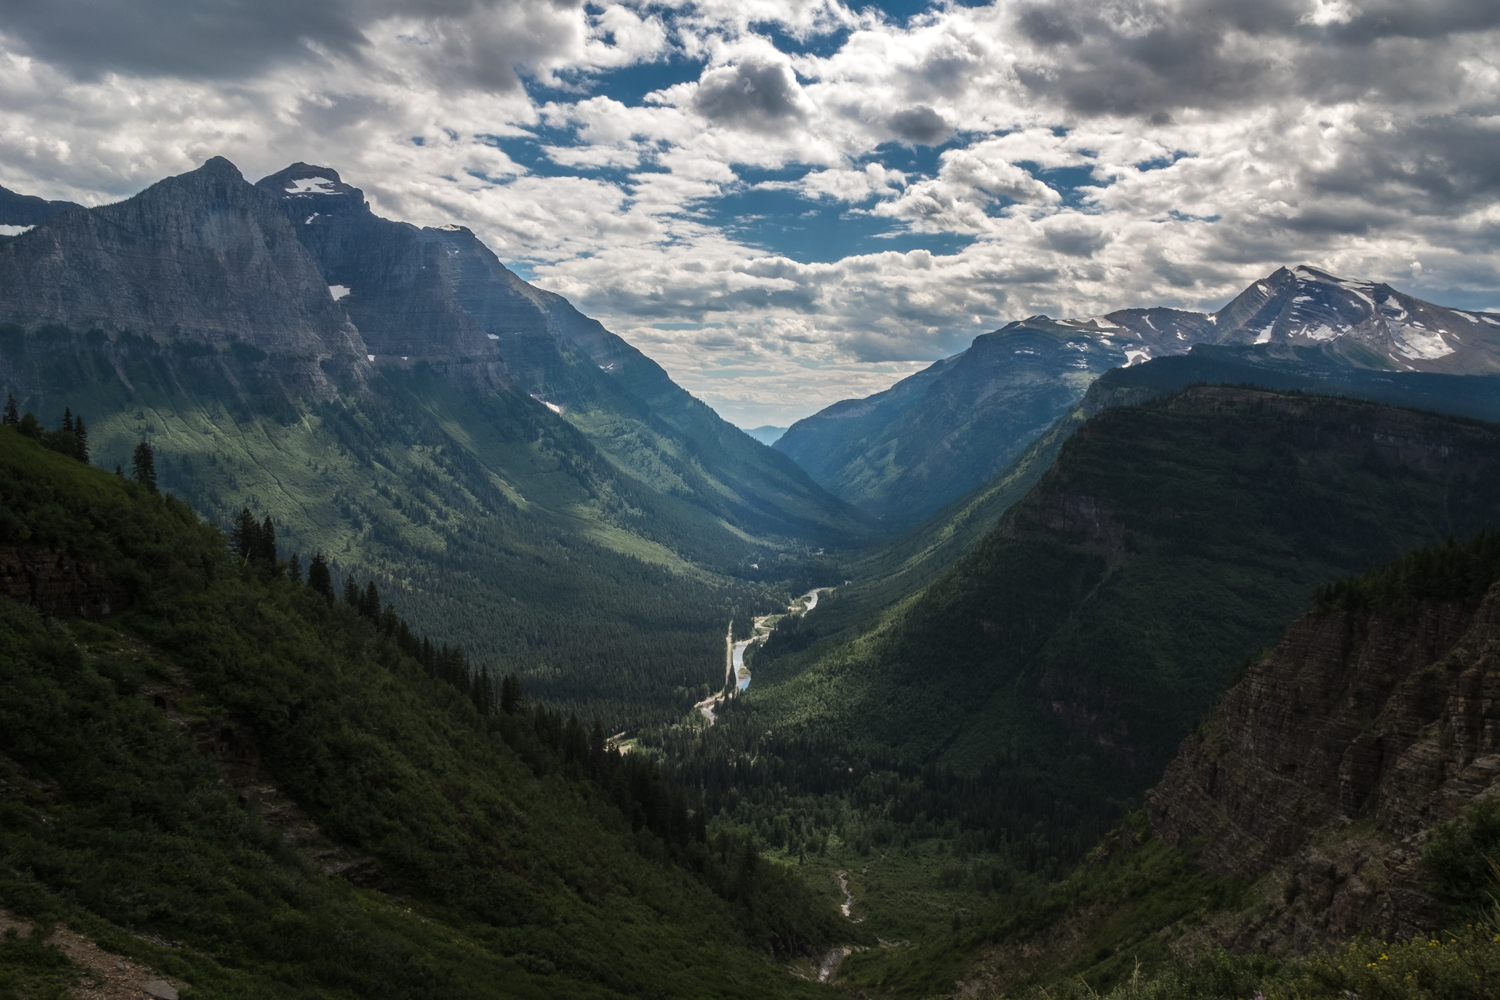 Glacier National, Glacier National Park, Montana, Going-to-the-Sun Road, Fujifilm X-E2, canada, glacier-carved valley, snow-peaked mountains, national park, landscape photograph, through the iris,